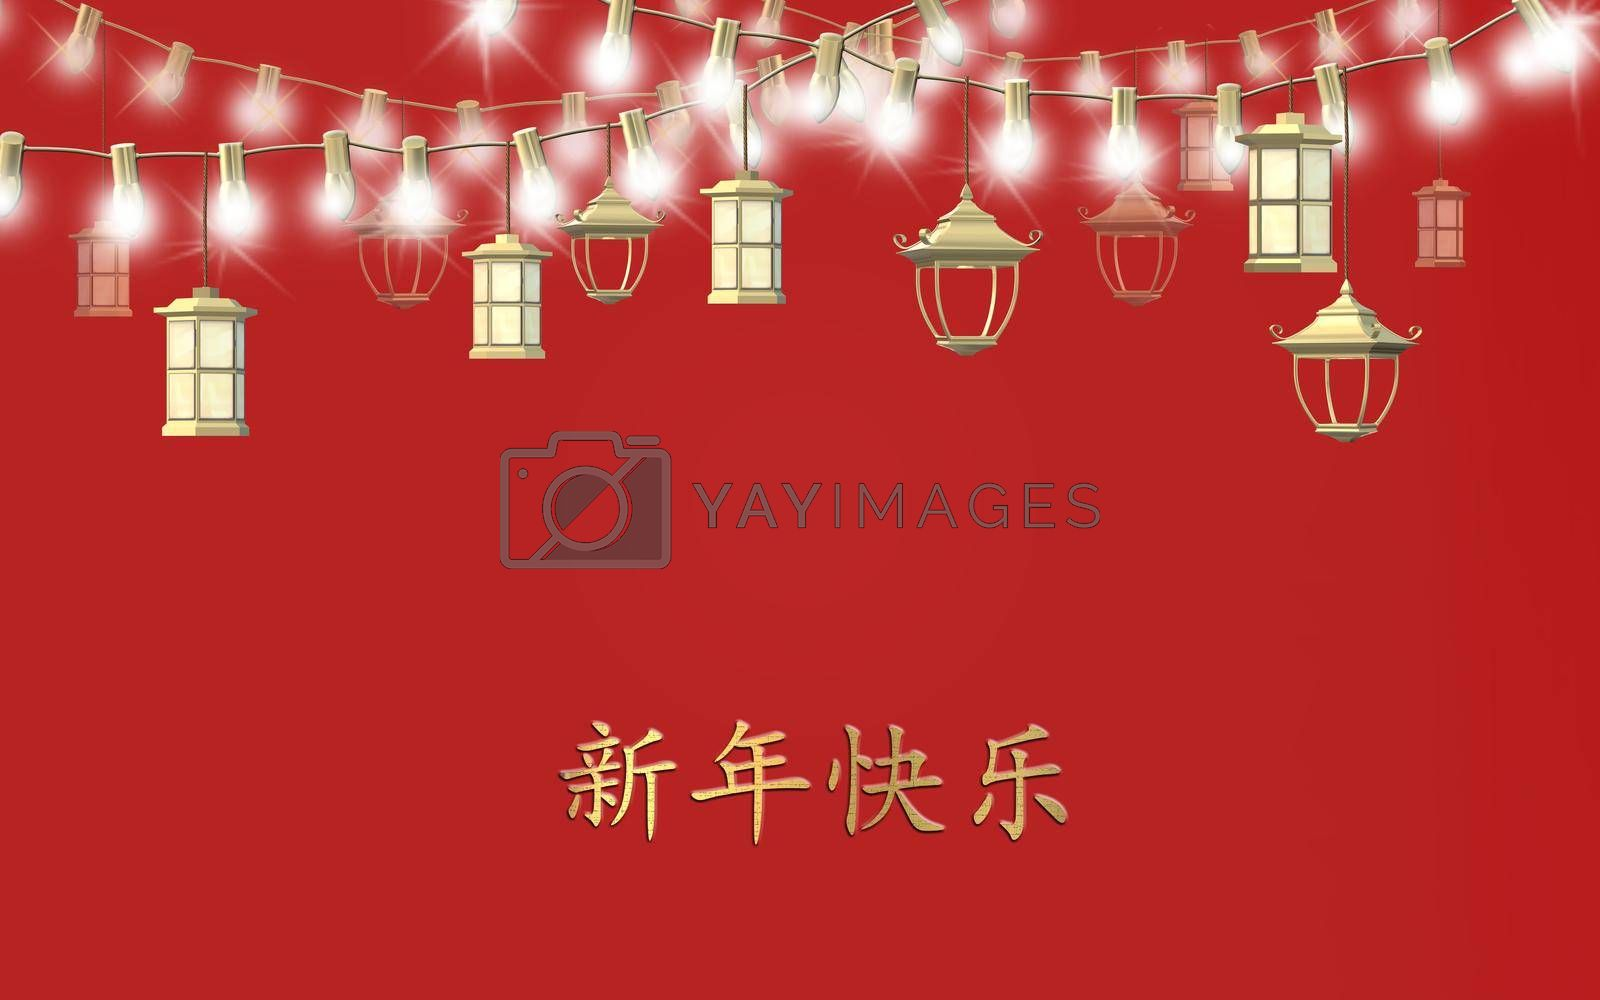 Traditional Chinese lanterns on string of lights on red background. Template for Chinese New Year festival celebration. Text Happy Chinese new year, 3D rendering illustration